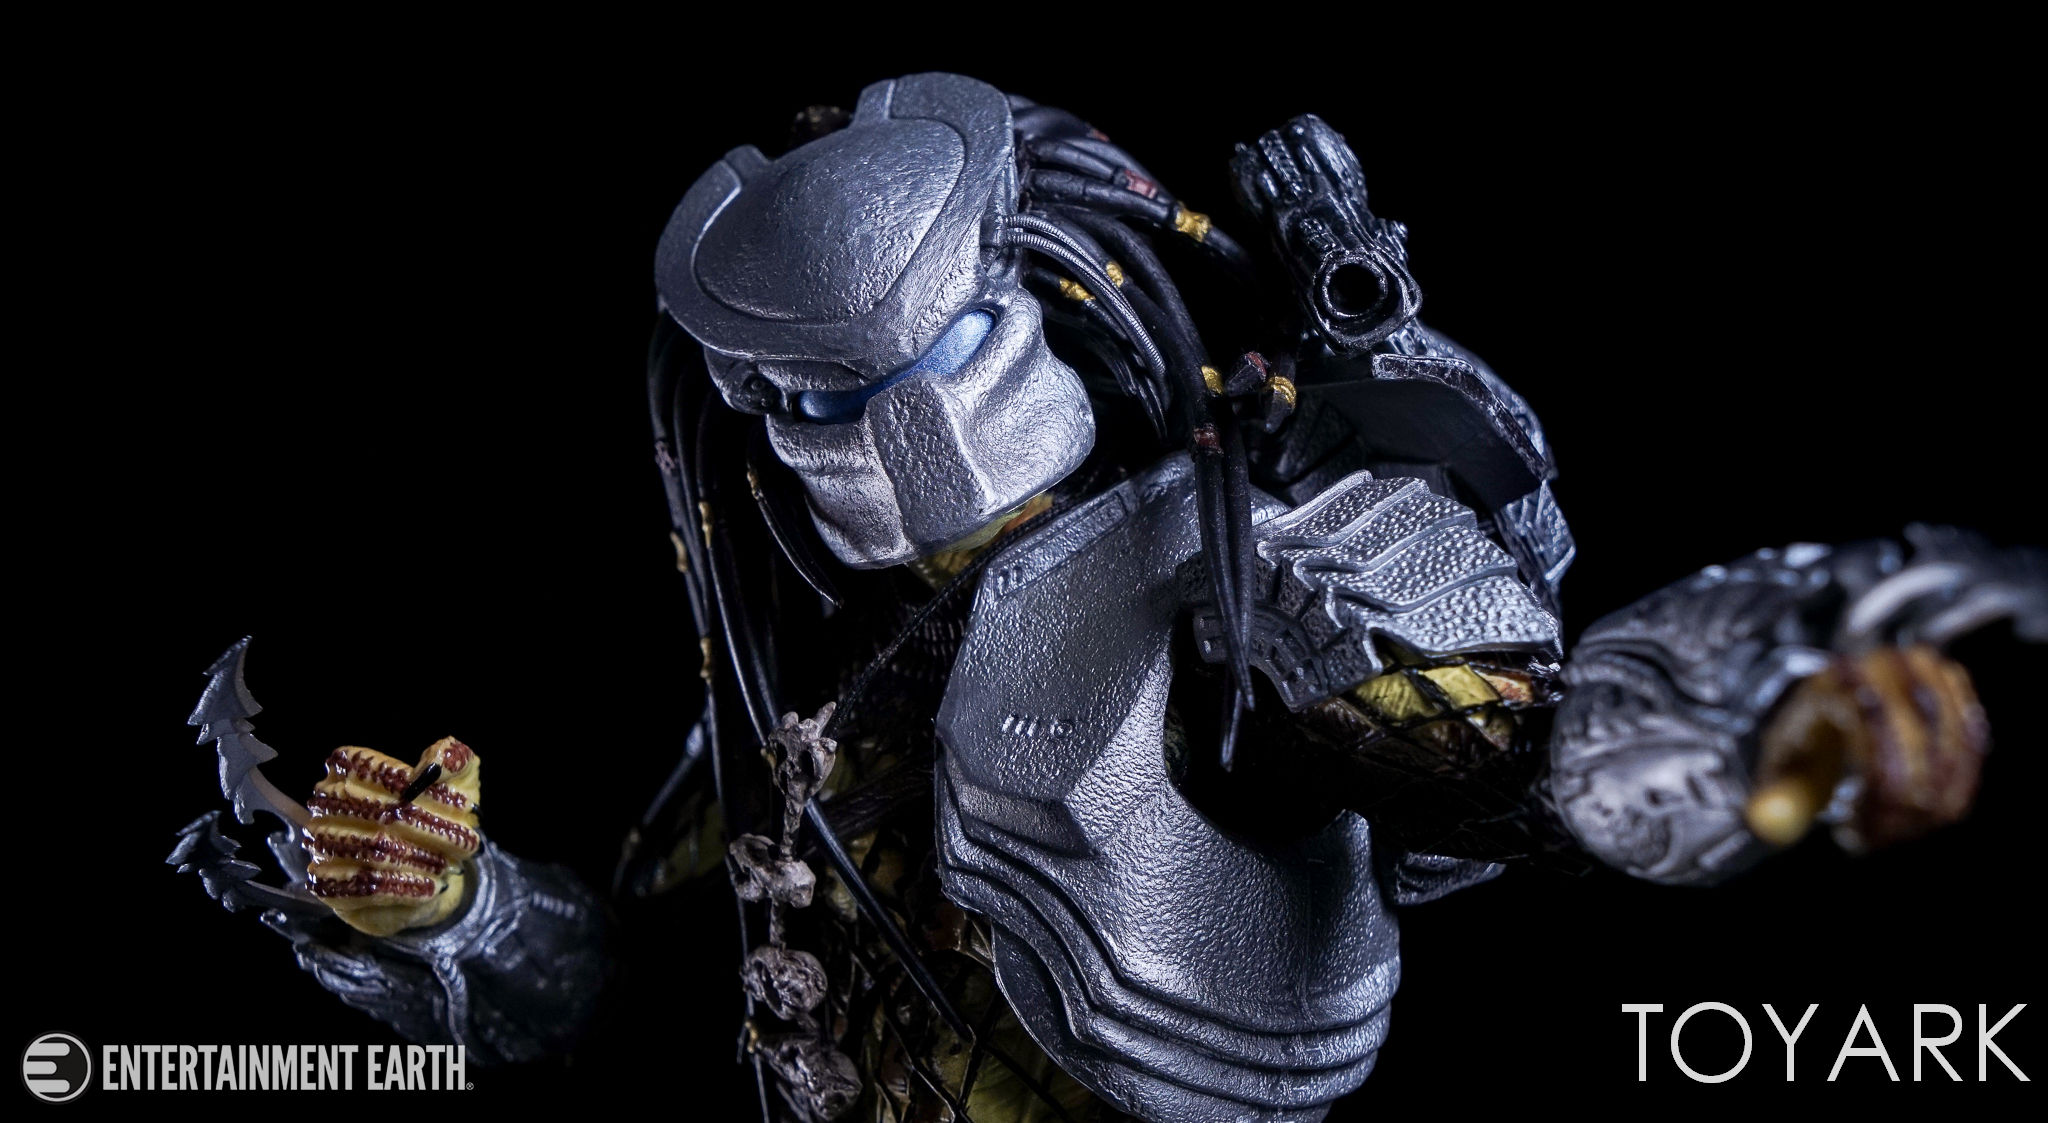 http://news.toyark.com/wp-content/uploads/sites/4/2017/04/NECA-Youngblood-Predator-020.jpg